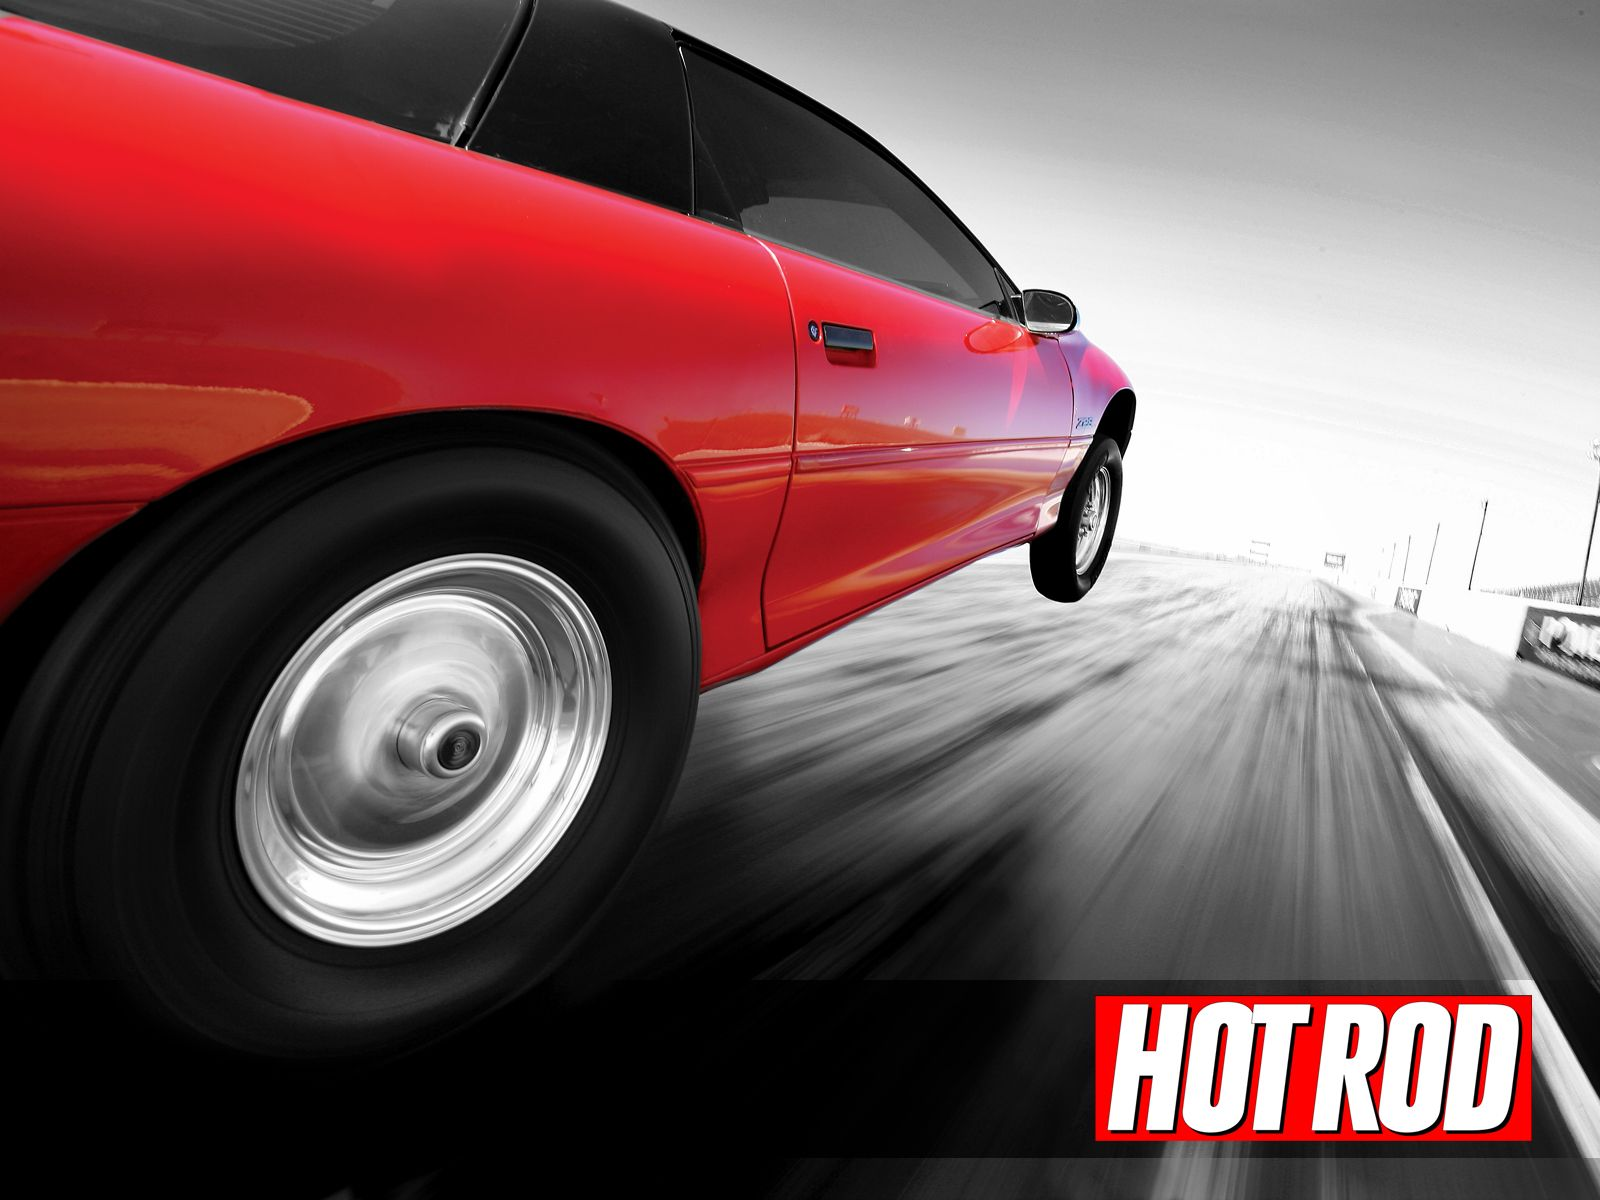 Hot Rod Wallpaper And Background Image 1600x1200 Id 187527 Wallpaper Abyss